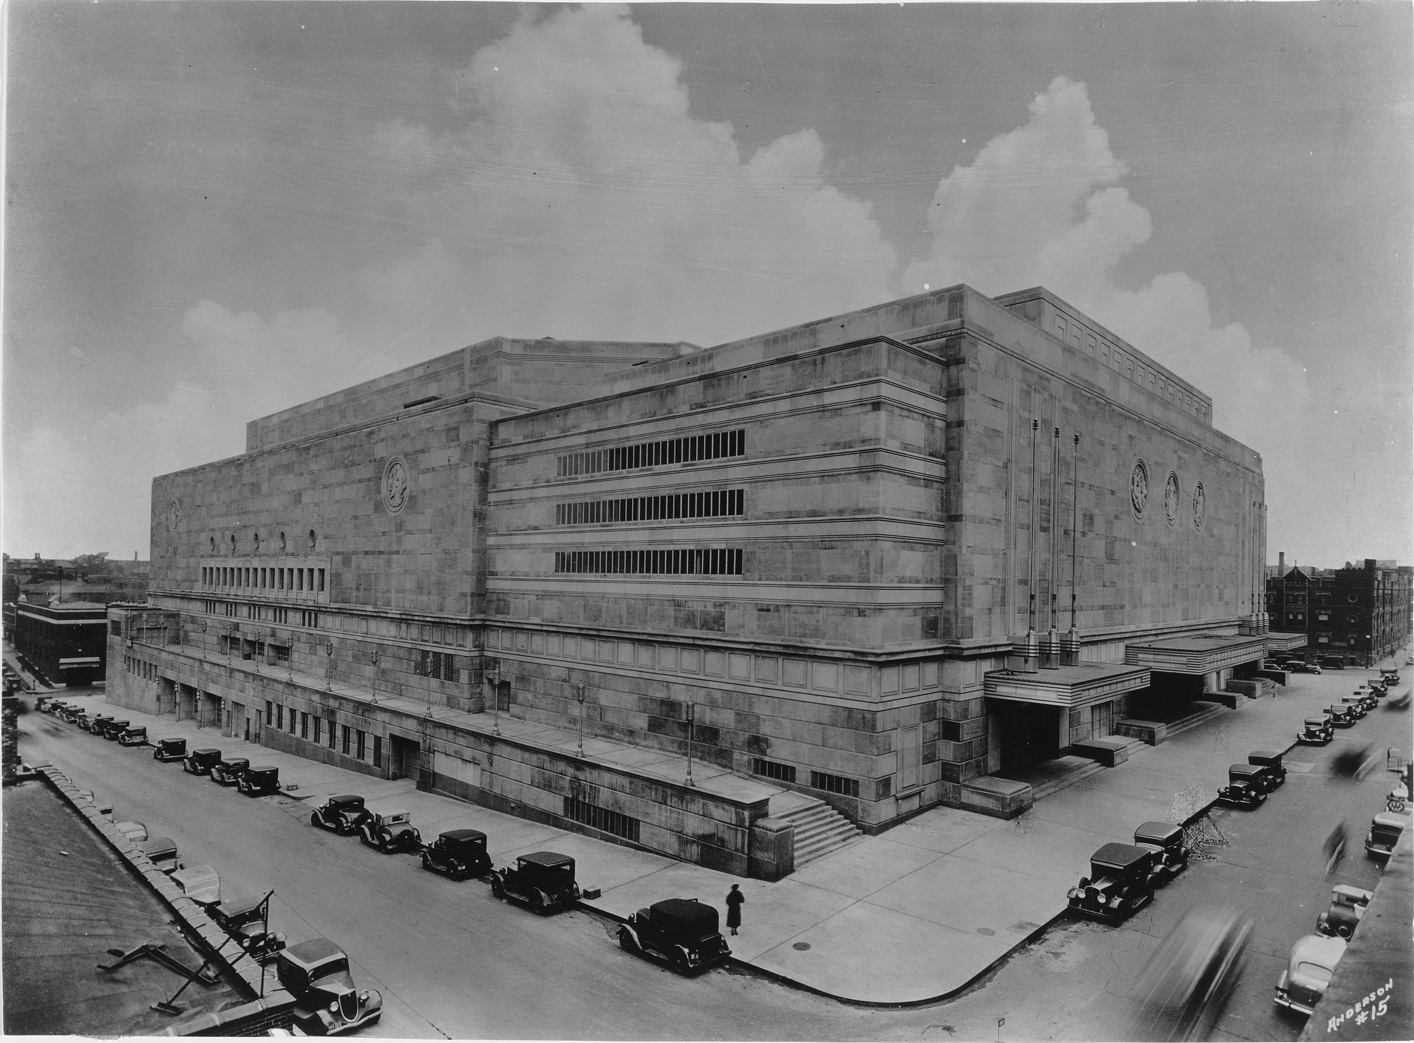 The Municipal Auditorium sometime after its completion in the 1930s. Image courtesy of the Missouri Valley Special Collections.